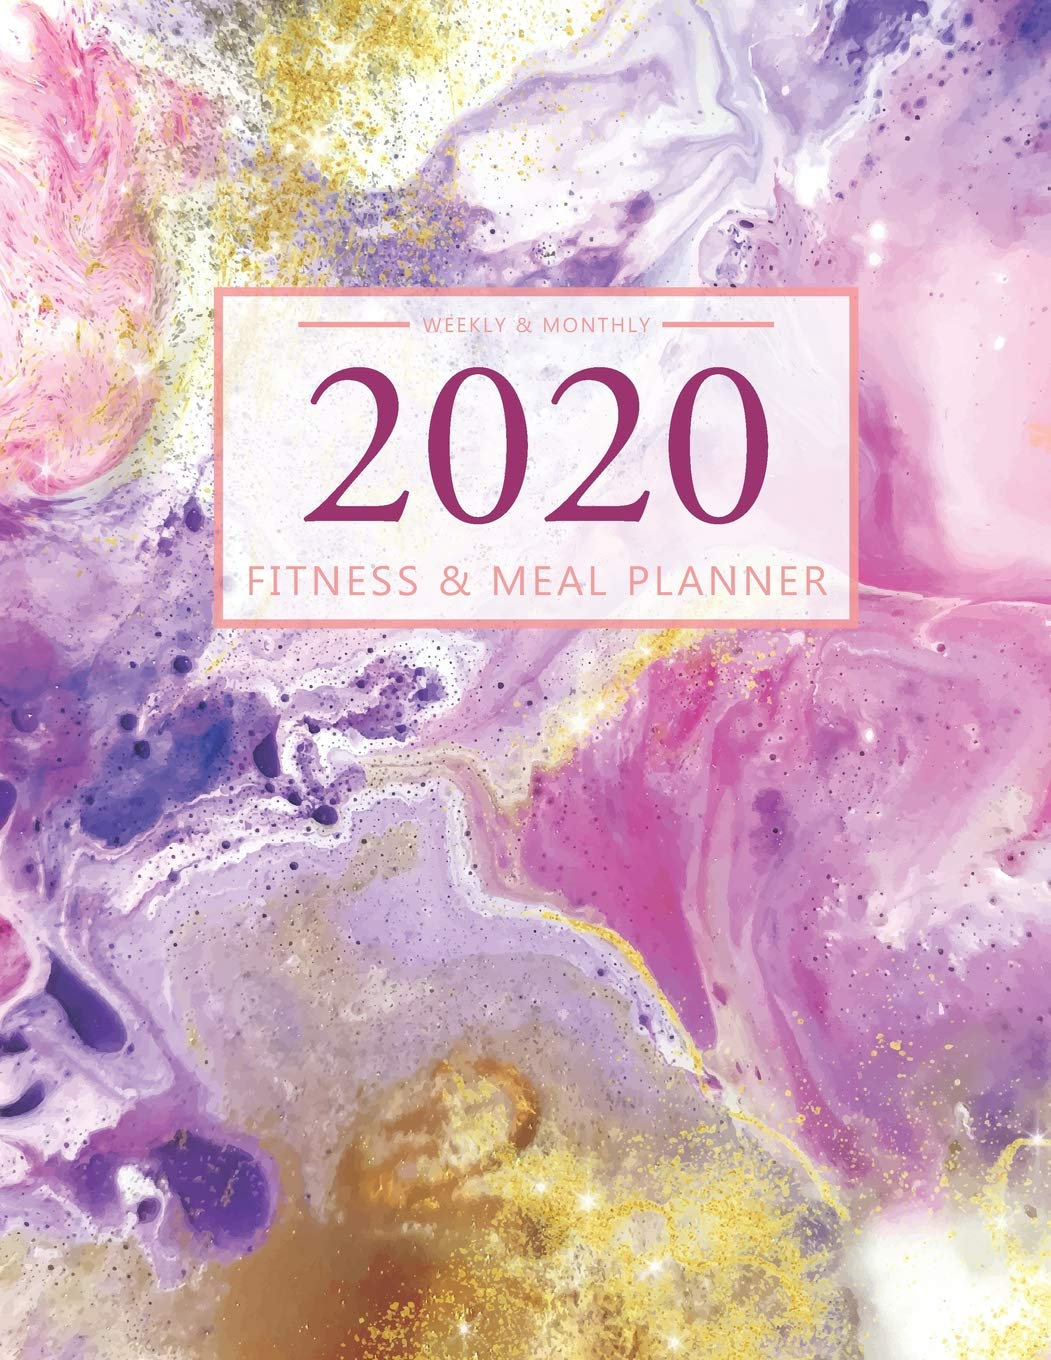 Fitness Calendar 2020 2020 Fitness and Meal Planner: 365 Daily 52 Week Calendar l